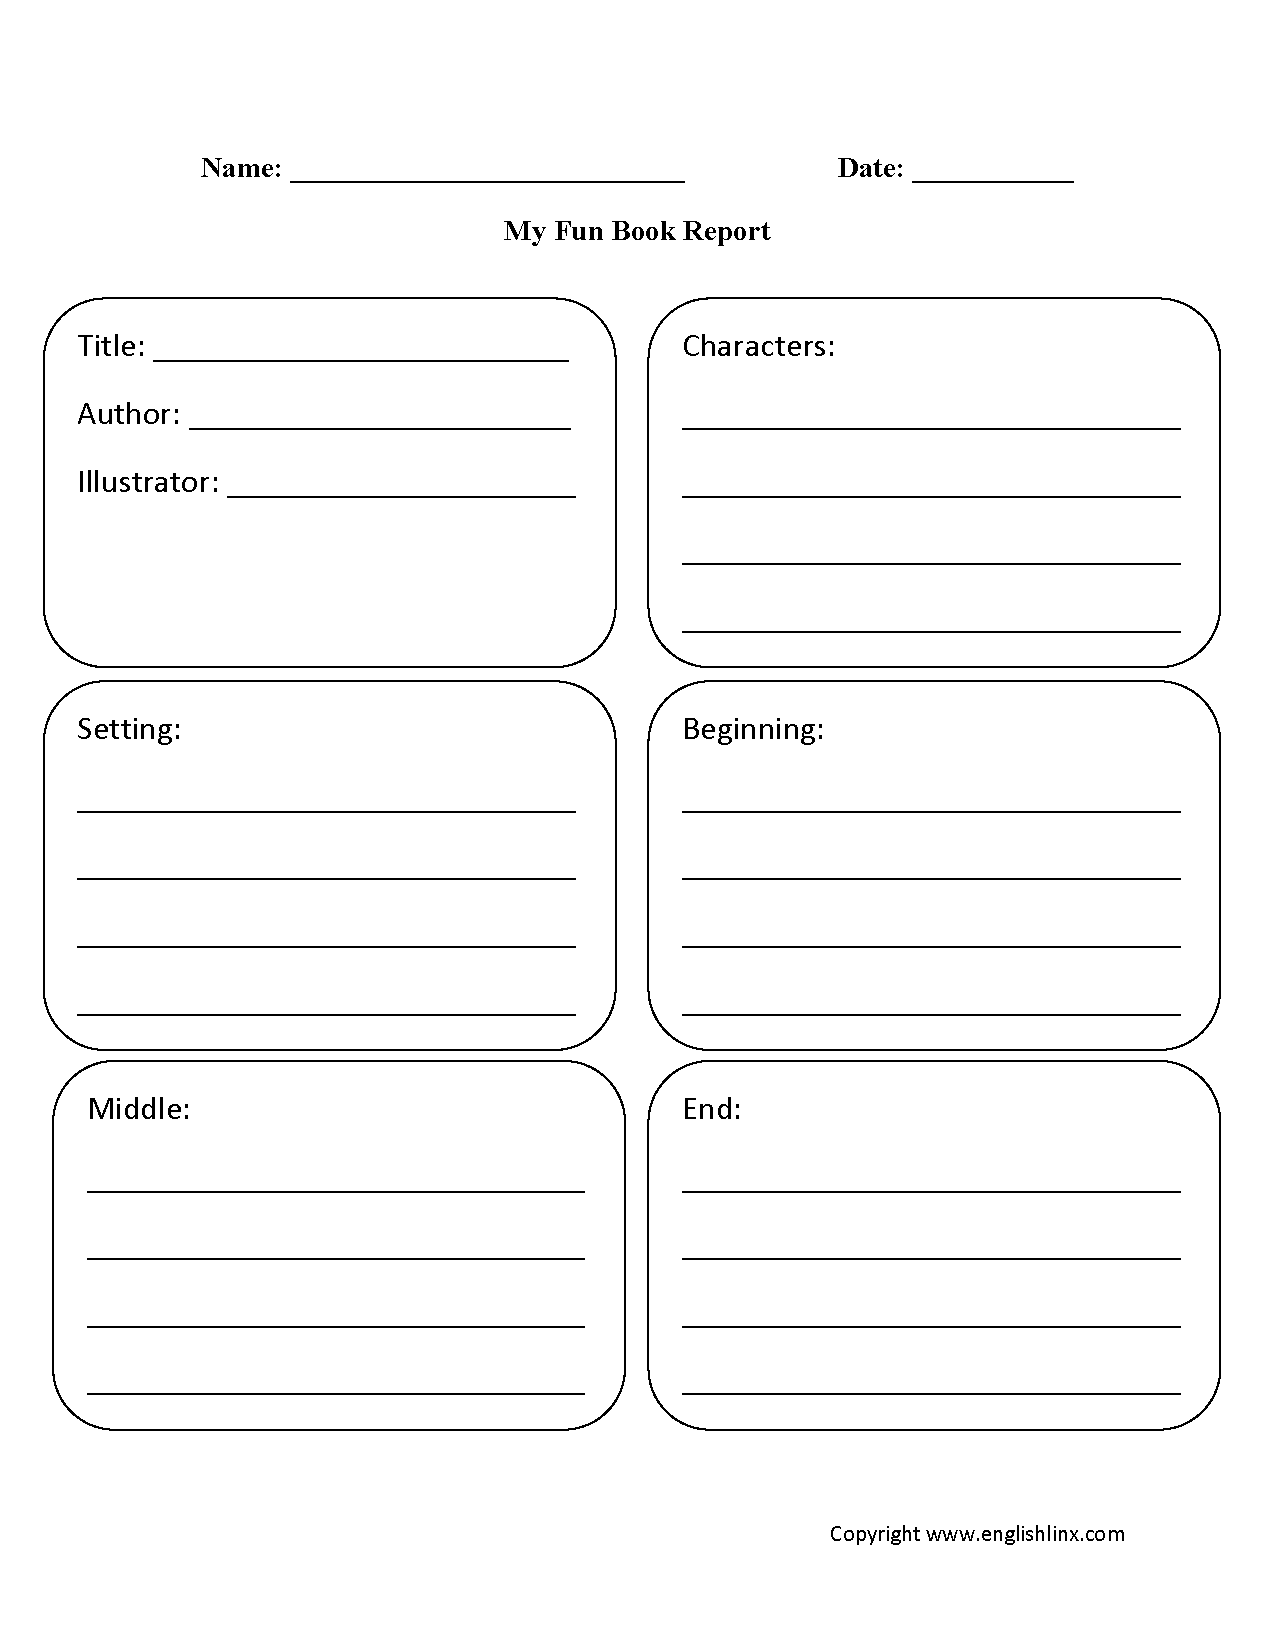 hight resolution of Fun Subjects Worksheet   Printable Worksheets and Activities for Teachers